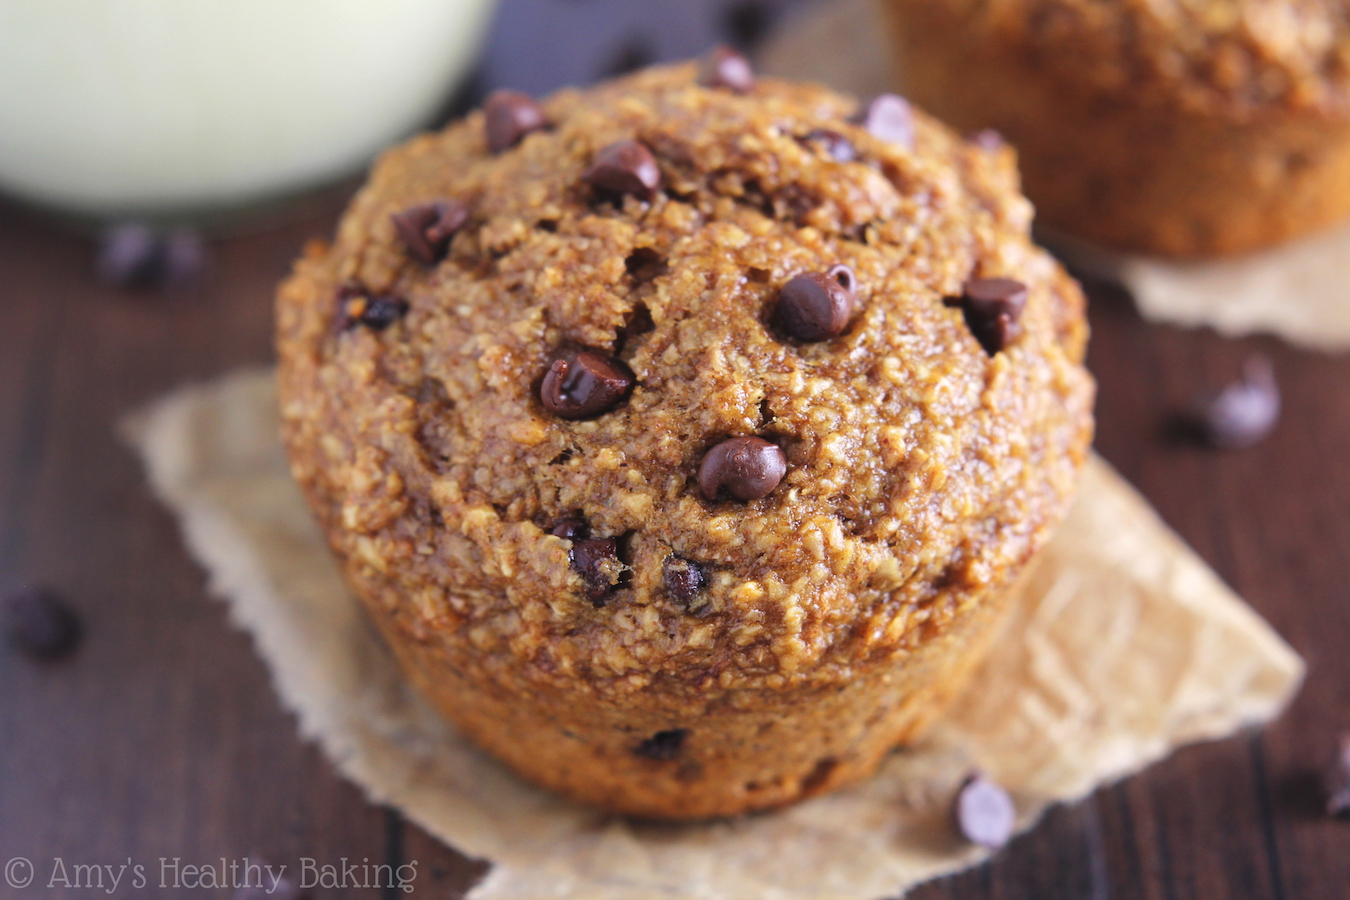 Chocolate Chip Banana Bran Muffins | Amy's Healthy Baking